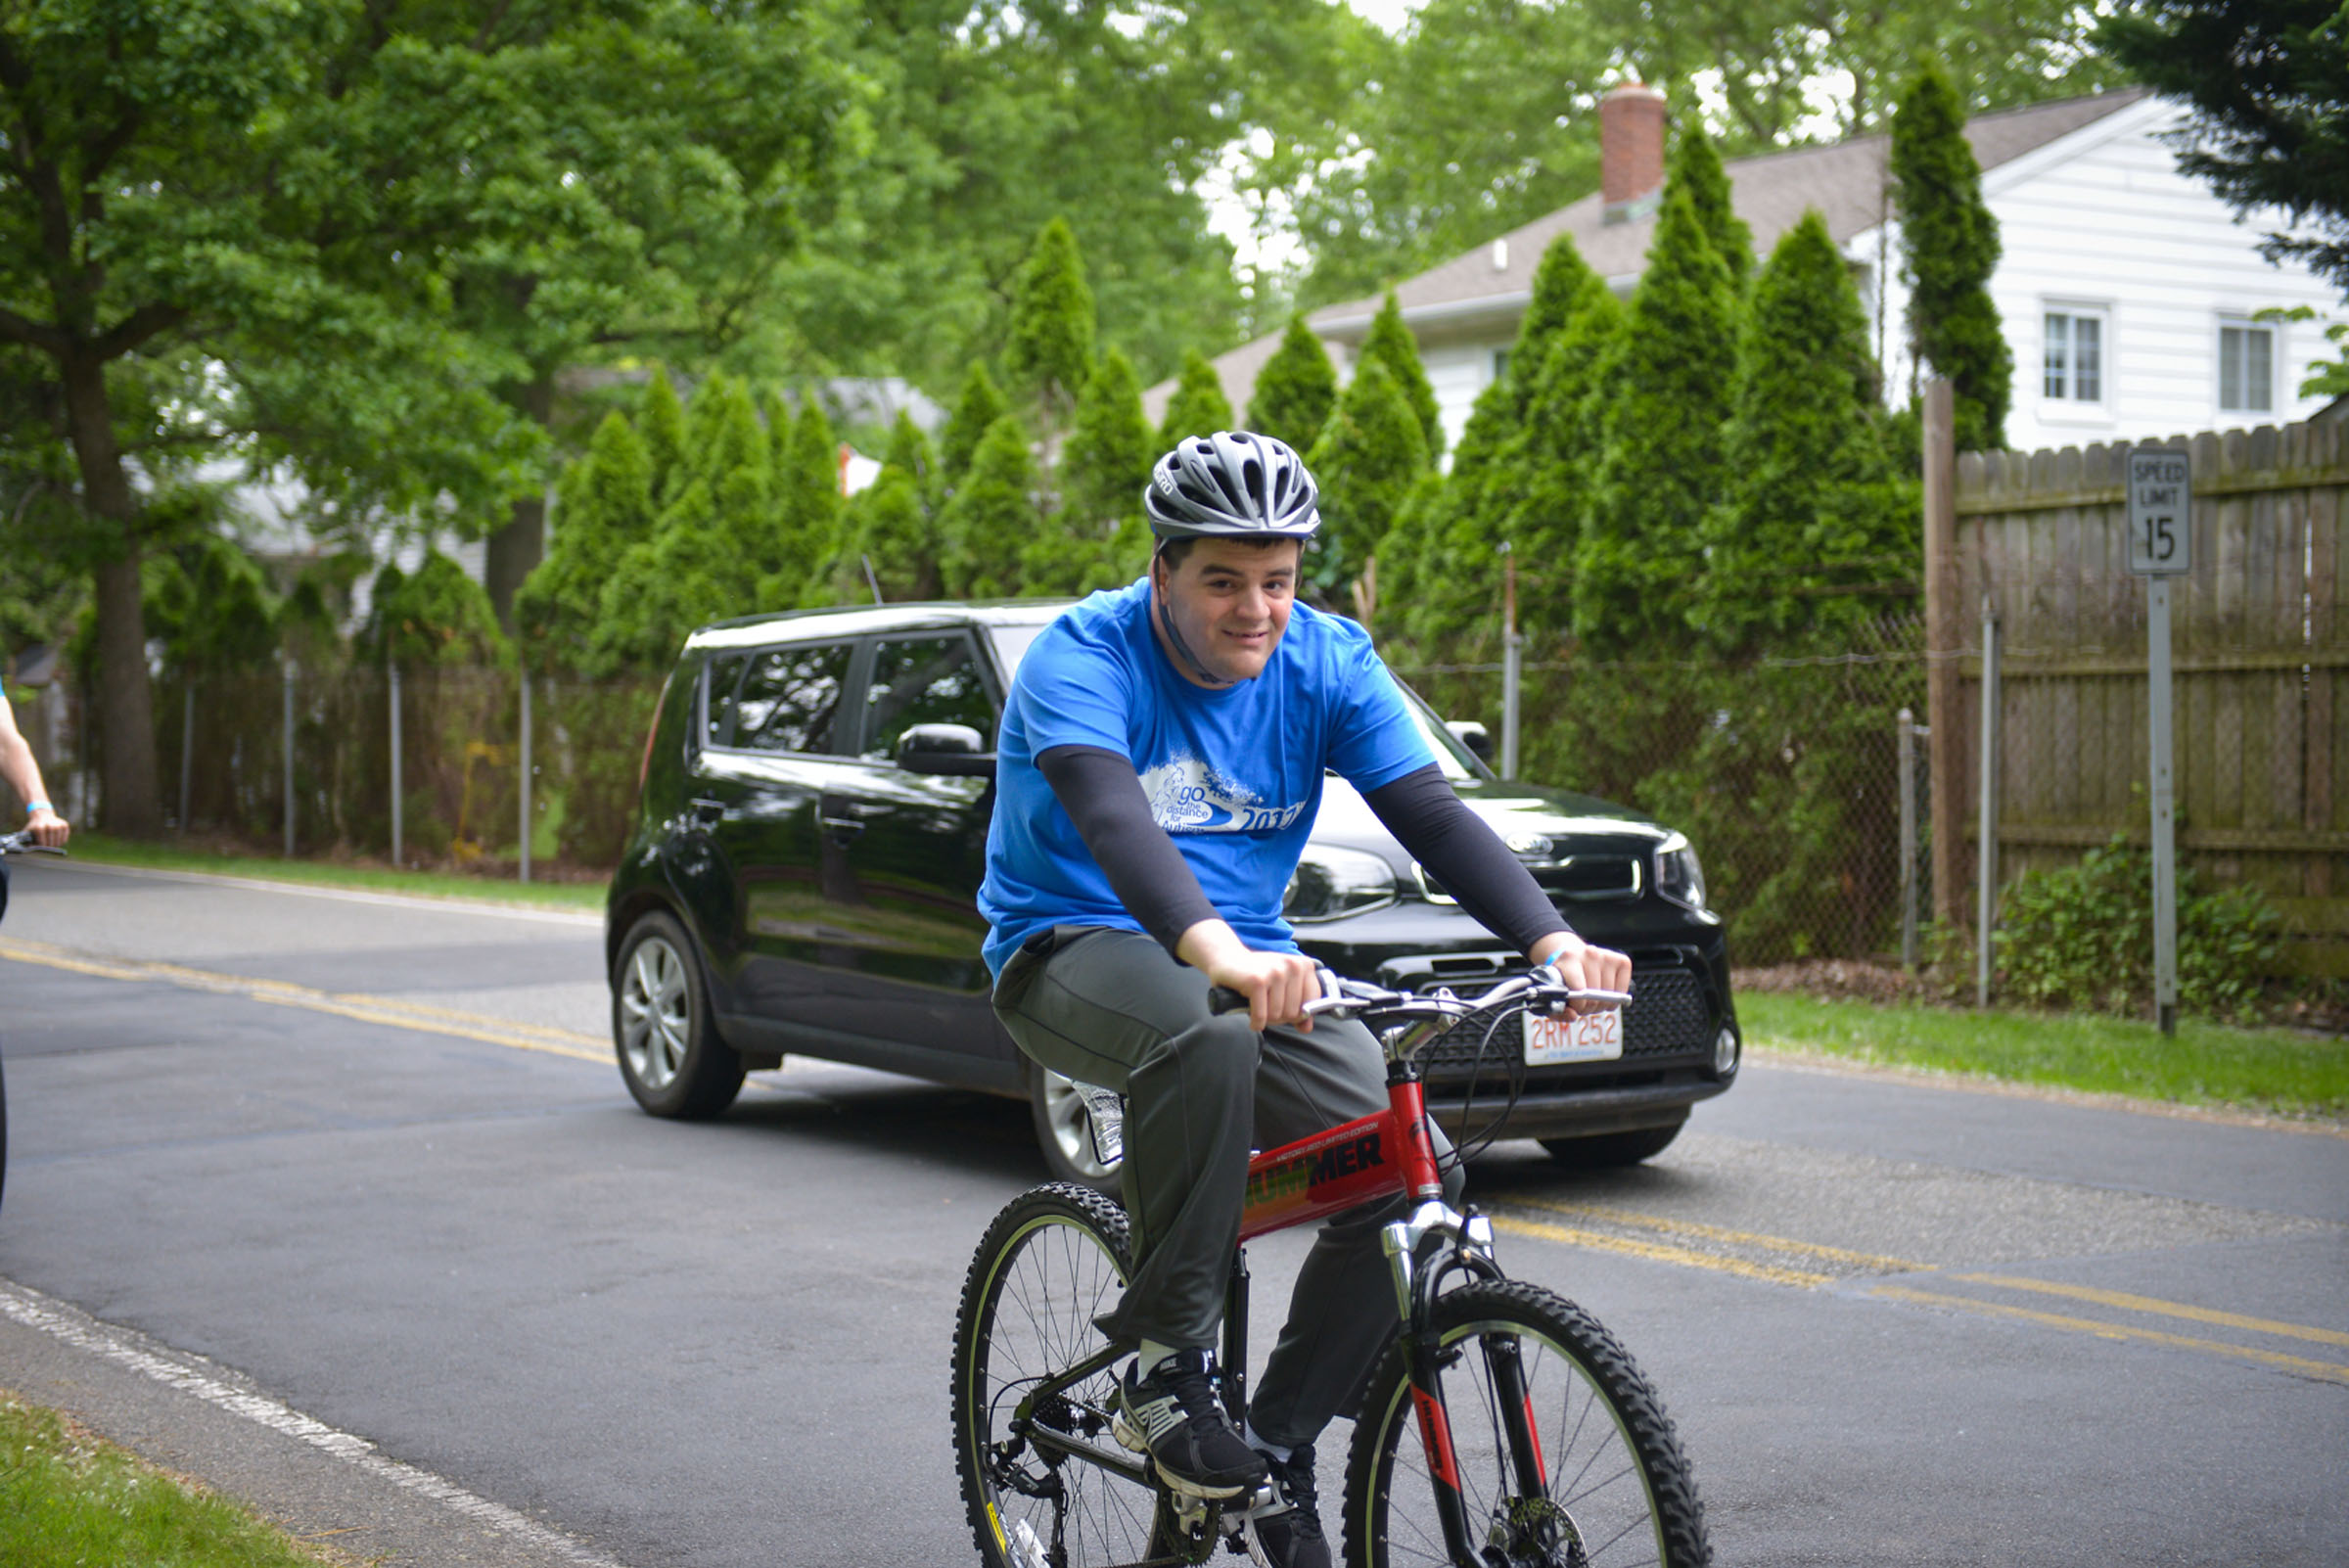 2017-06-04 GTD4A Charity Bike Ride - BCC - Paramus NJ-2298.jpg